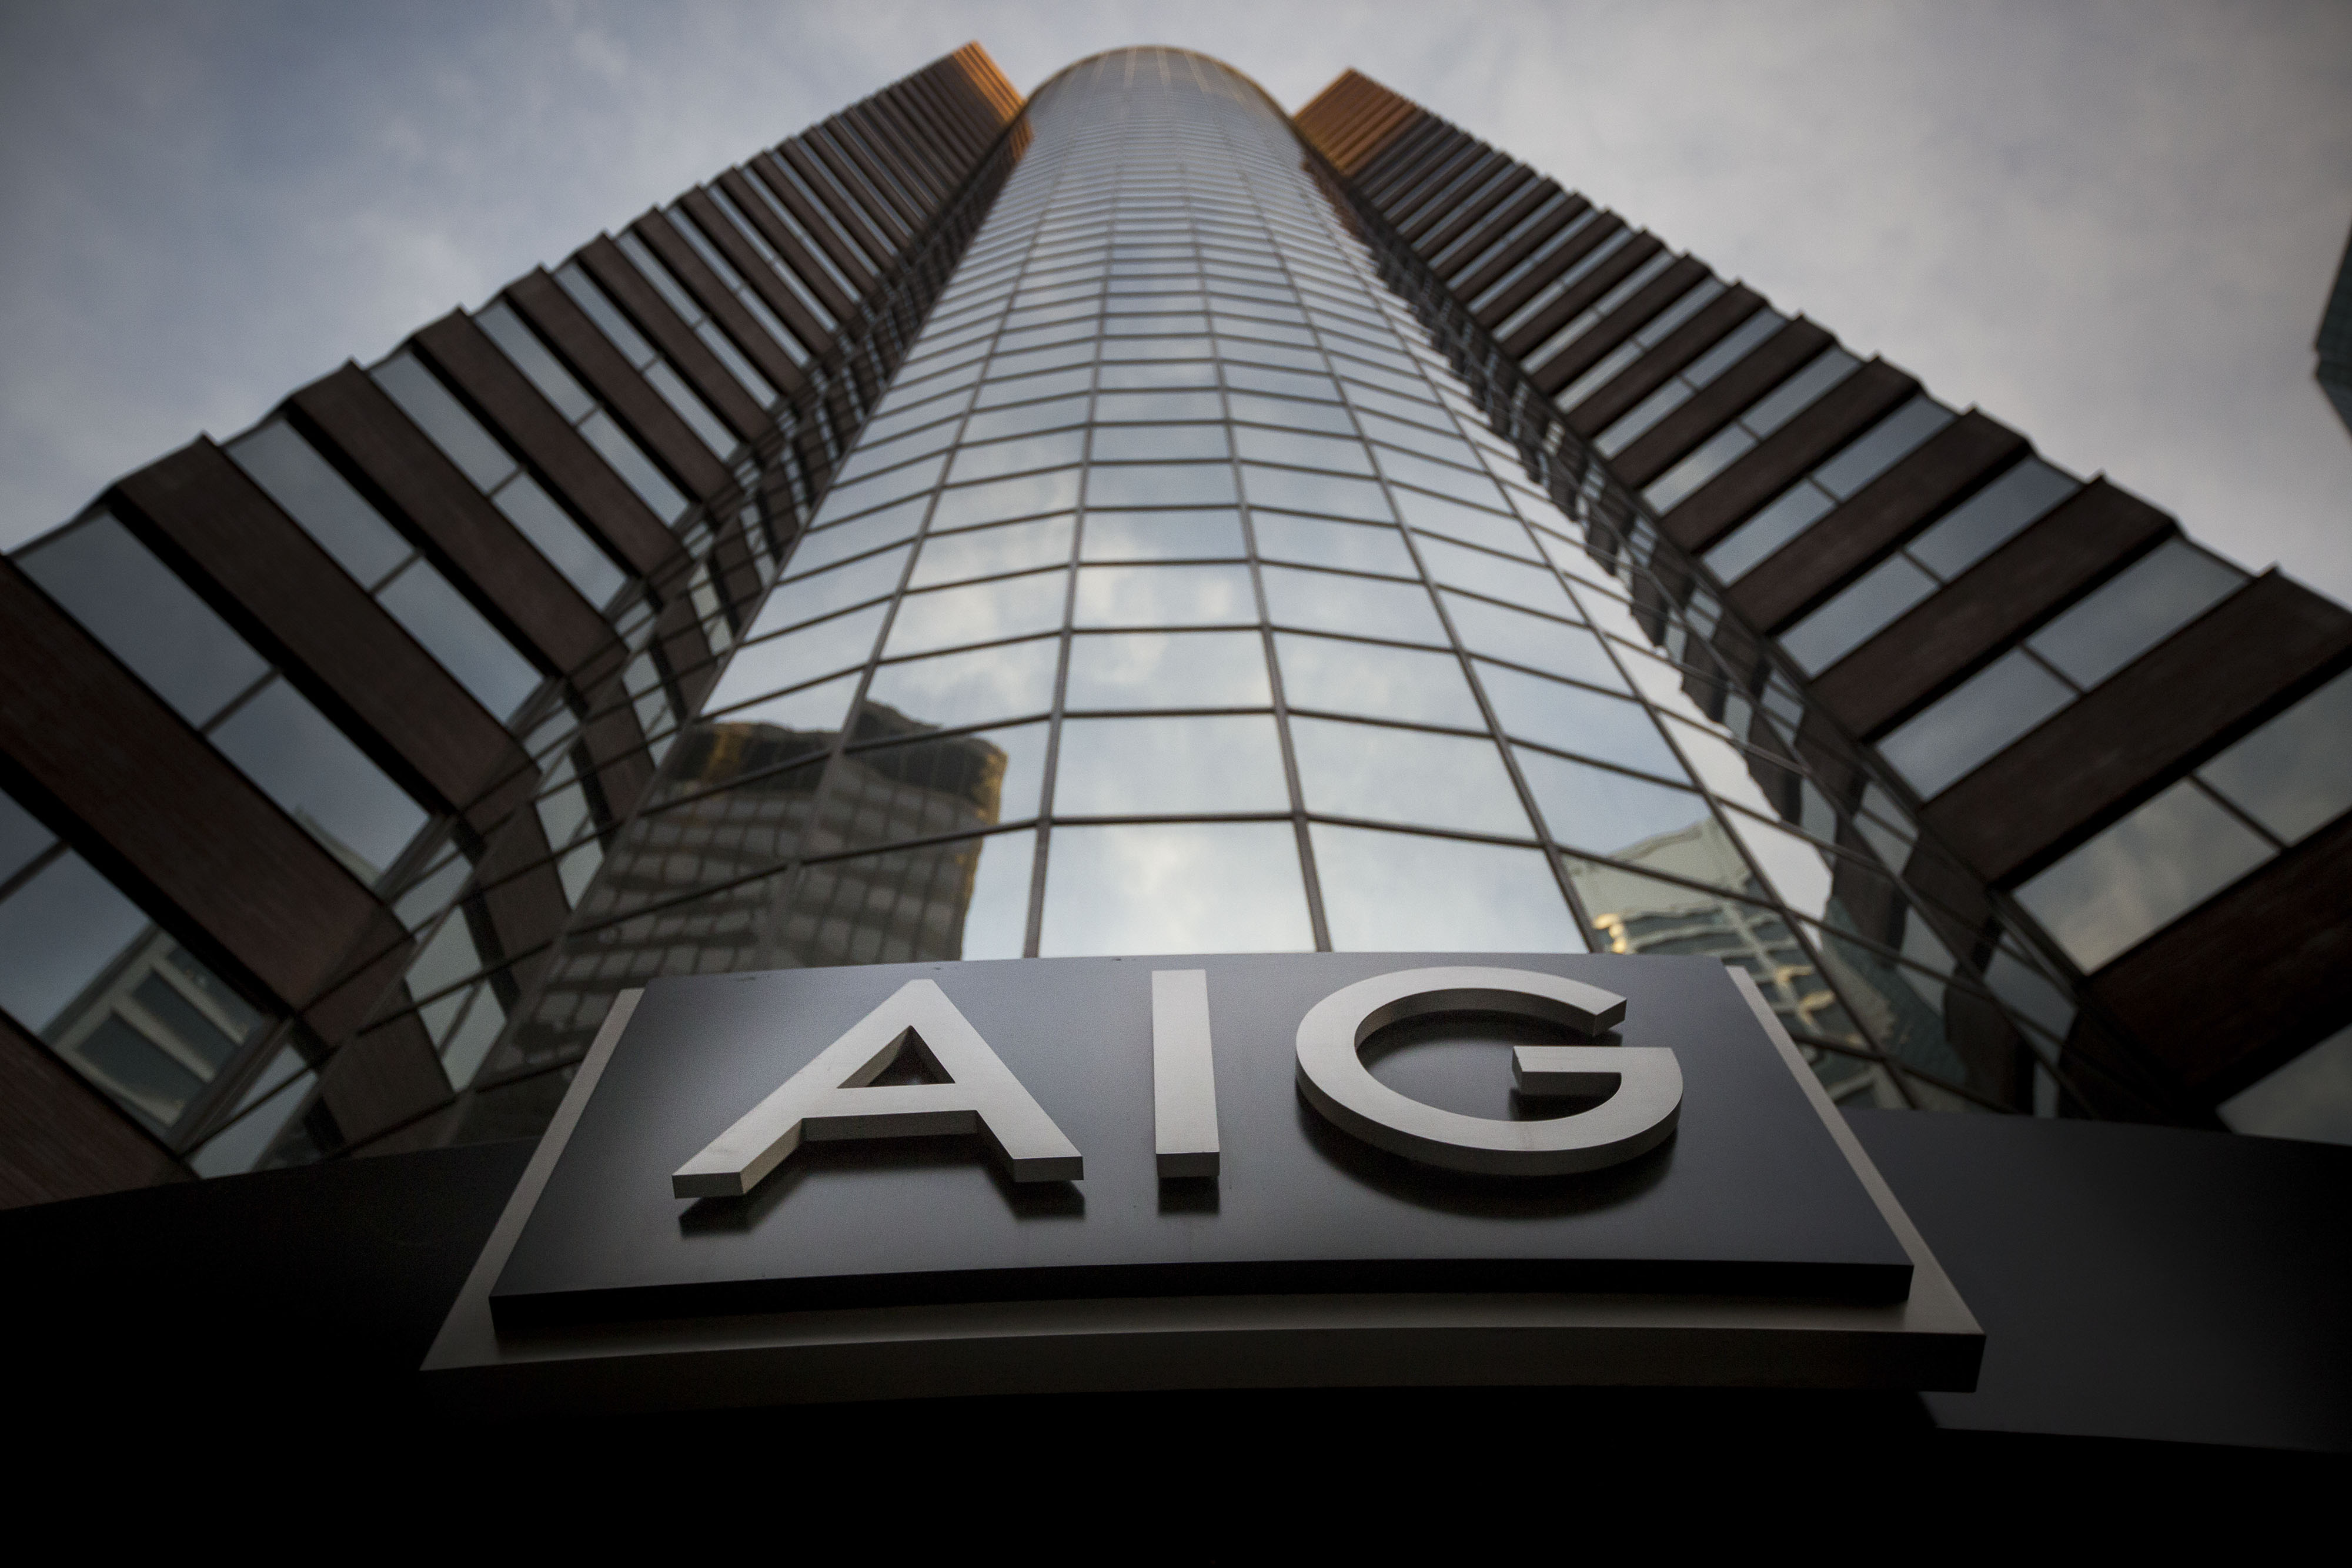 American International Group Inc. (AIG) Offices Ahead Of Earnings Figures